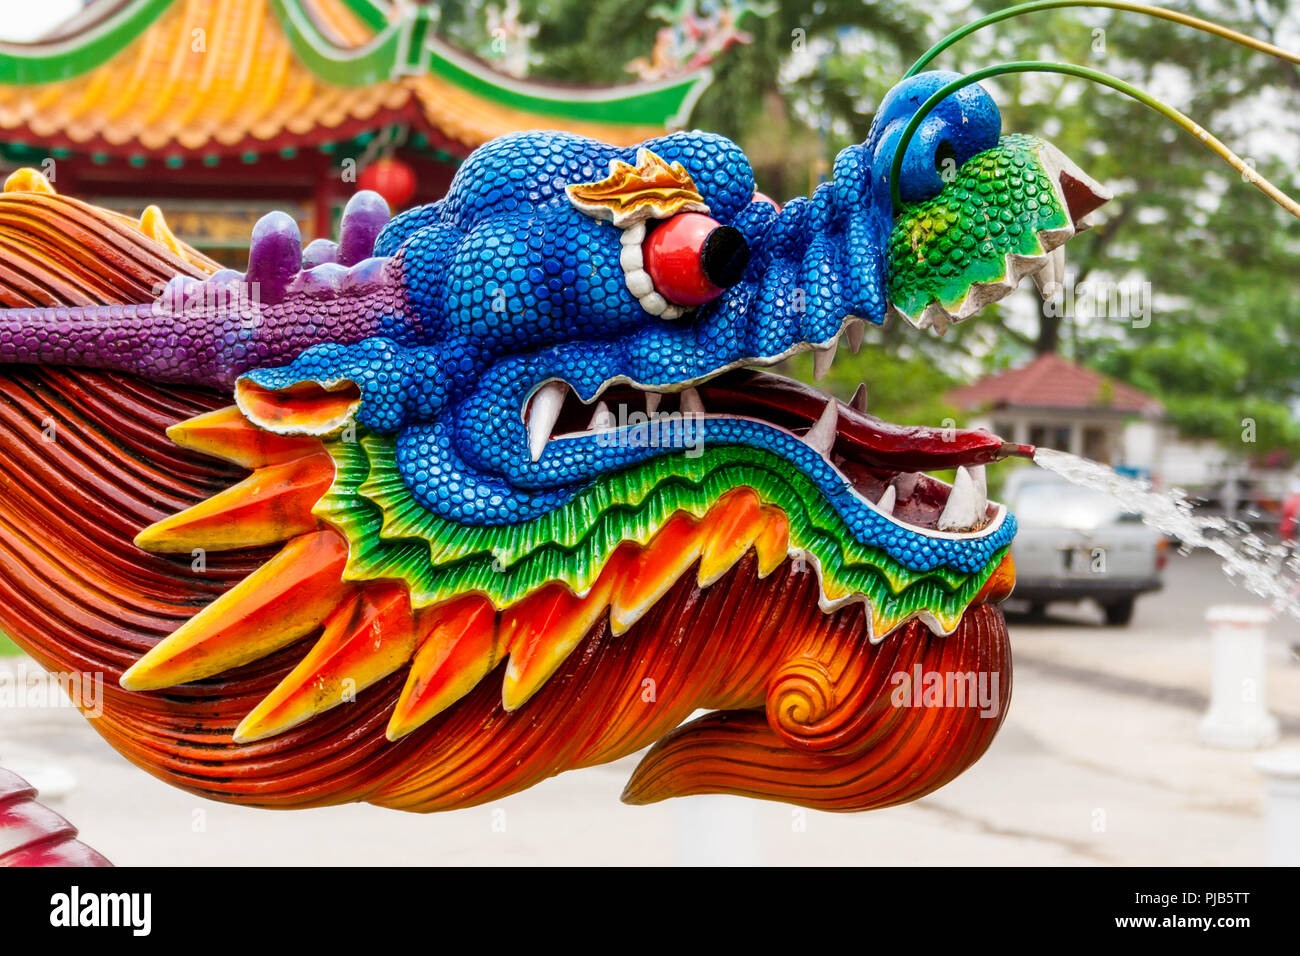 A nice close-up of a colourful water spraying dragon head at a Chinese temple. The water jet comes out of its tongue. - Stock Image